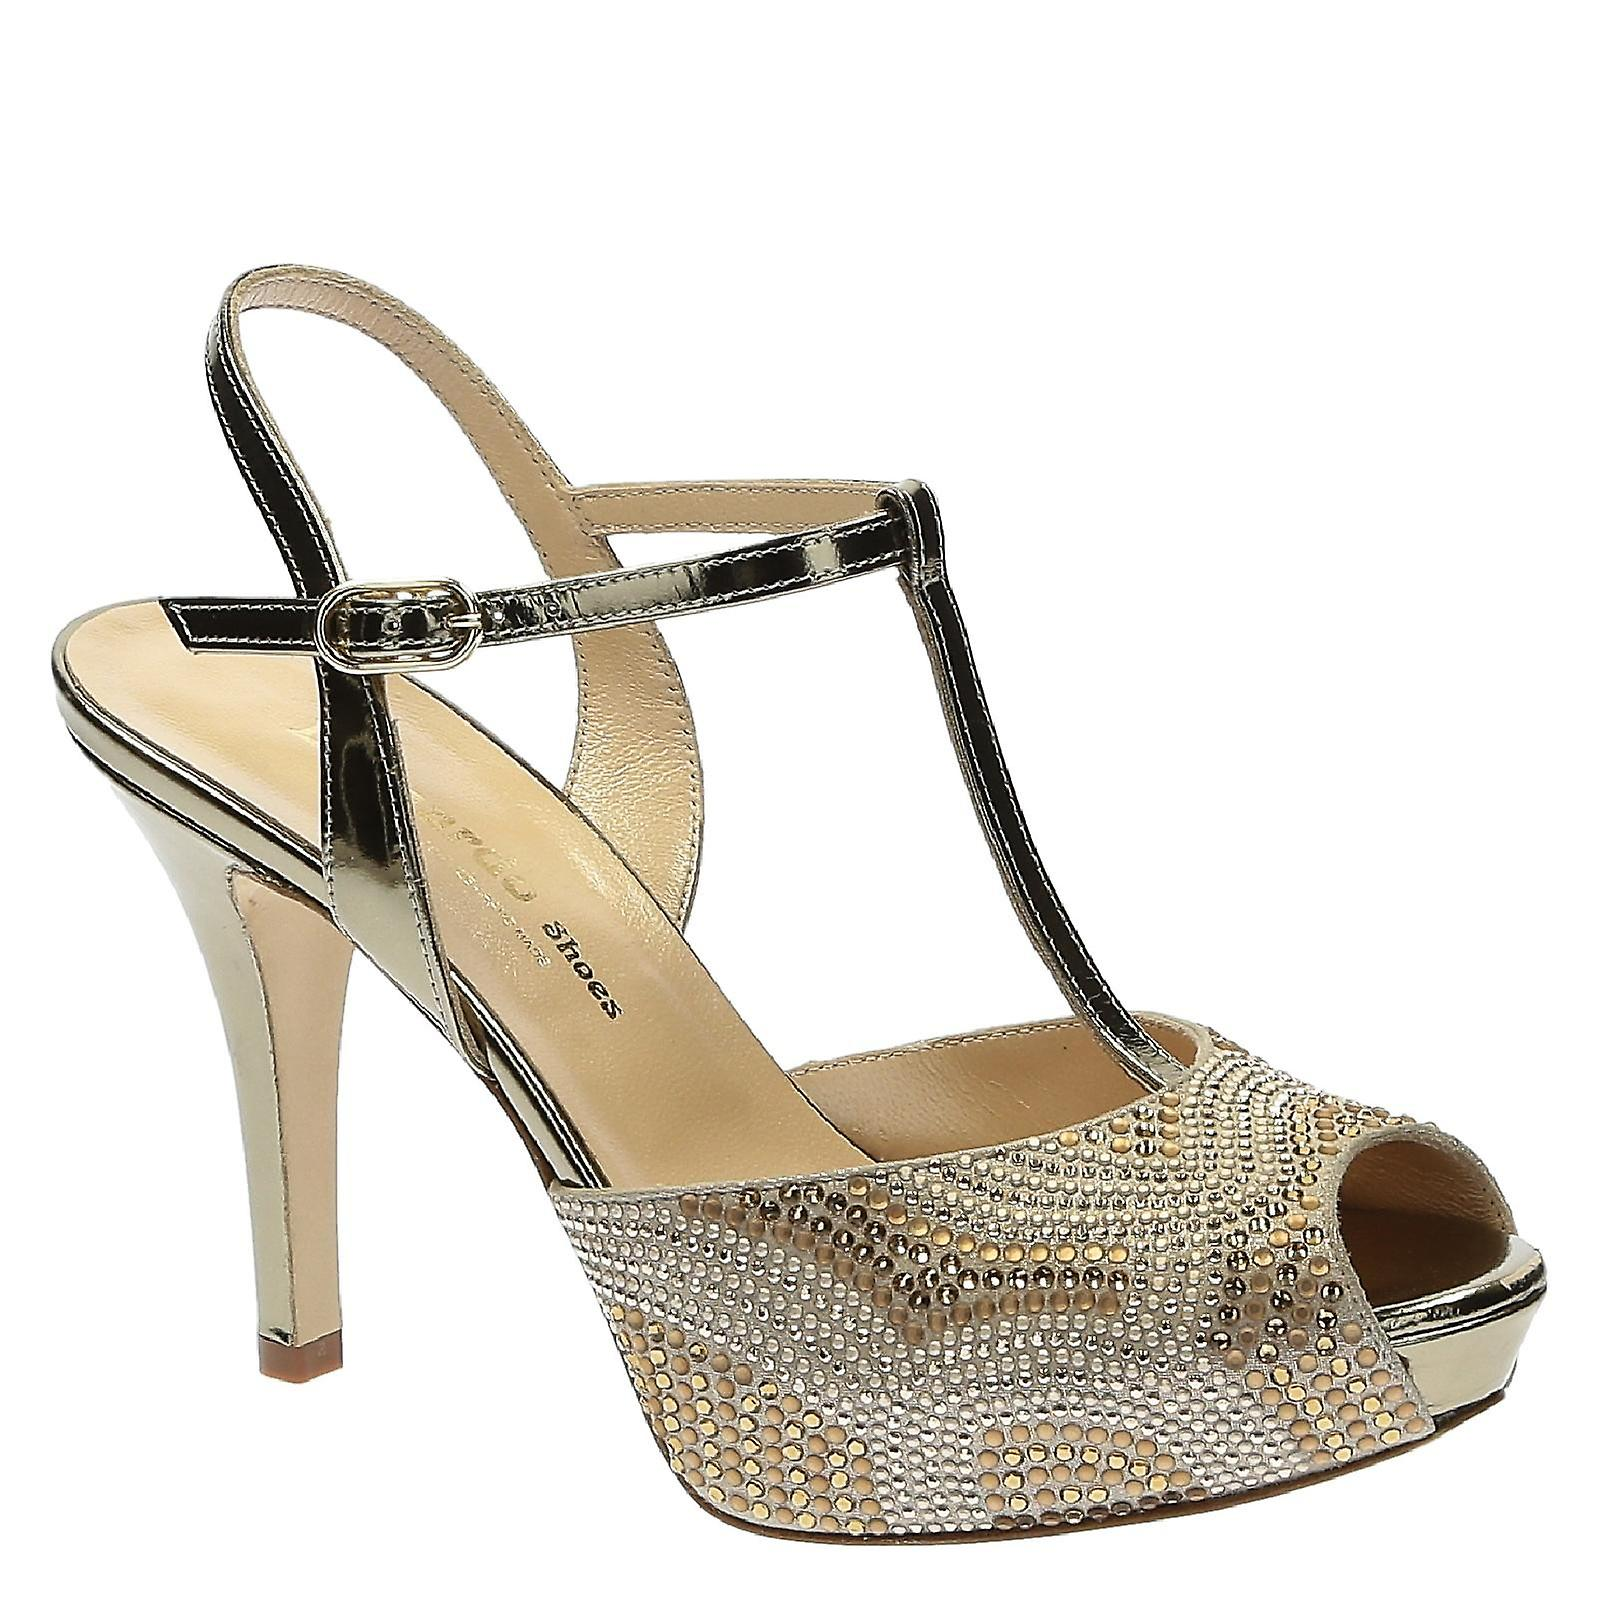 High heels sandals ankle strap open toe sandals heels with platform in laminated light brown leather with strass a18ec6